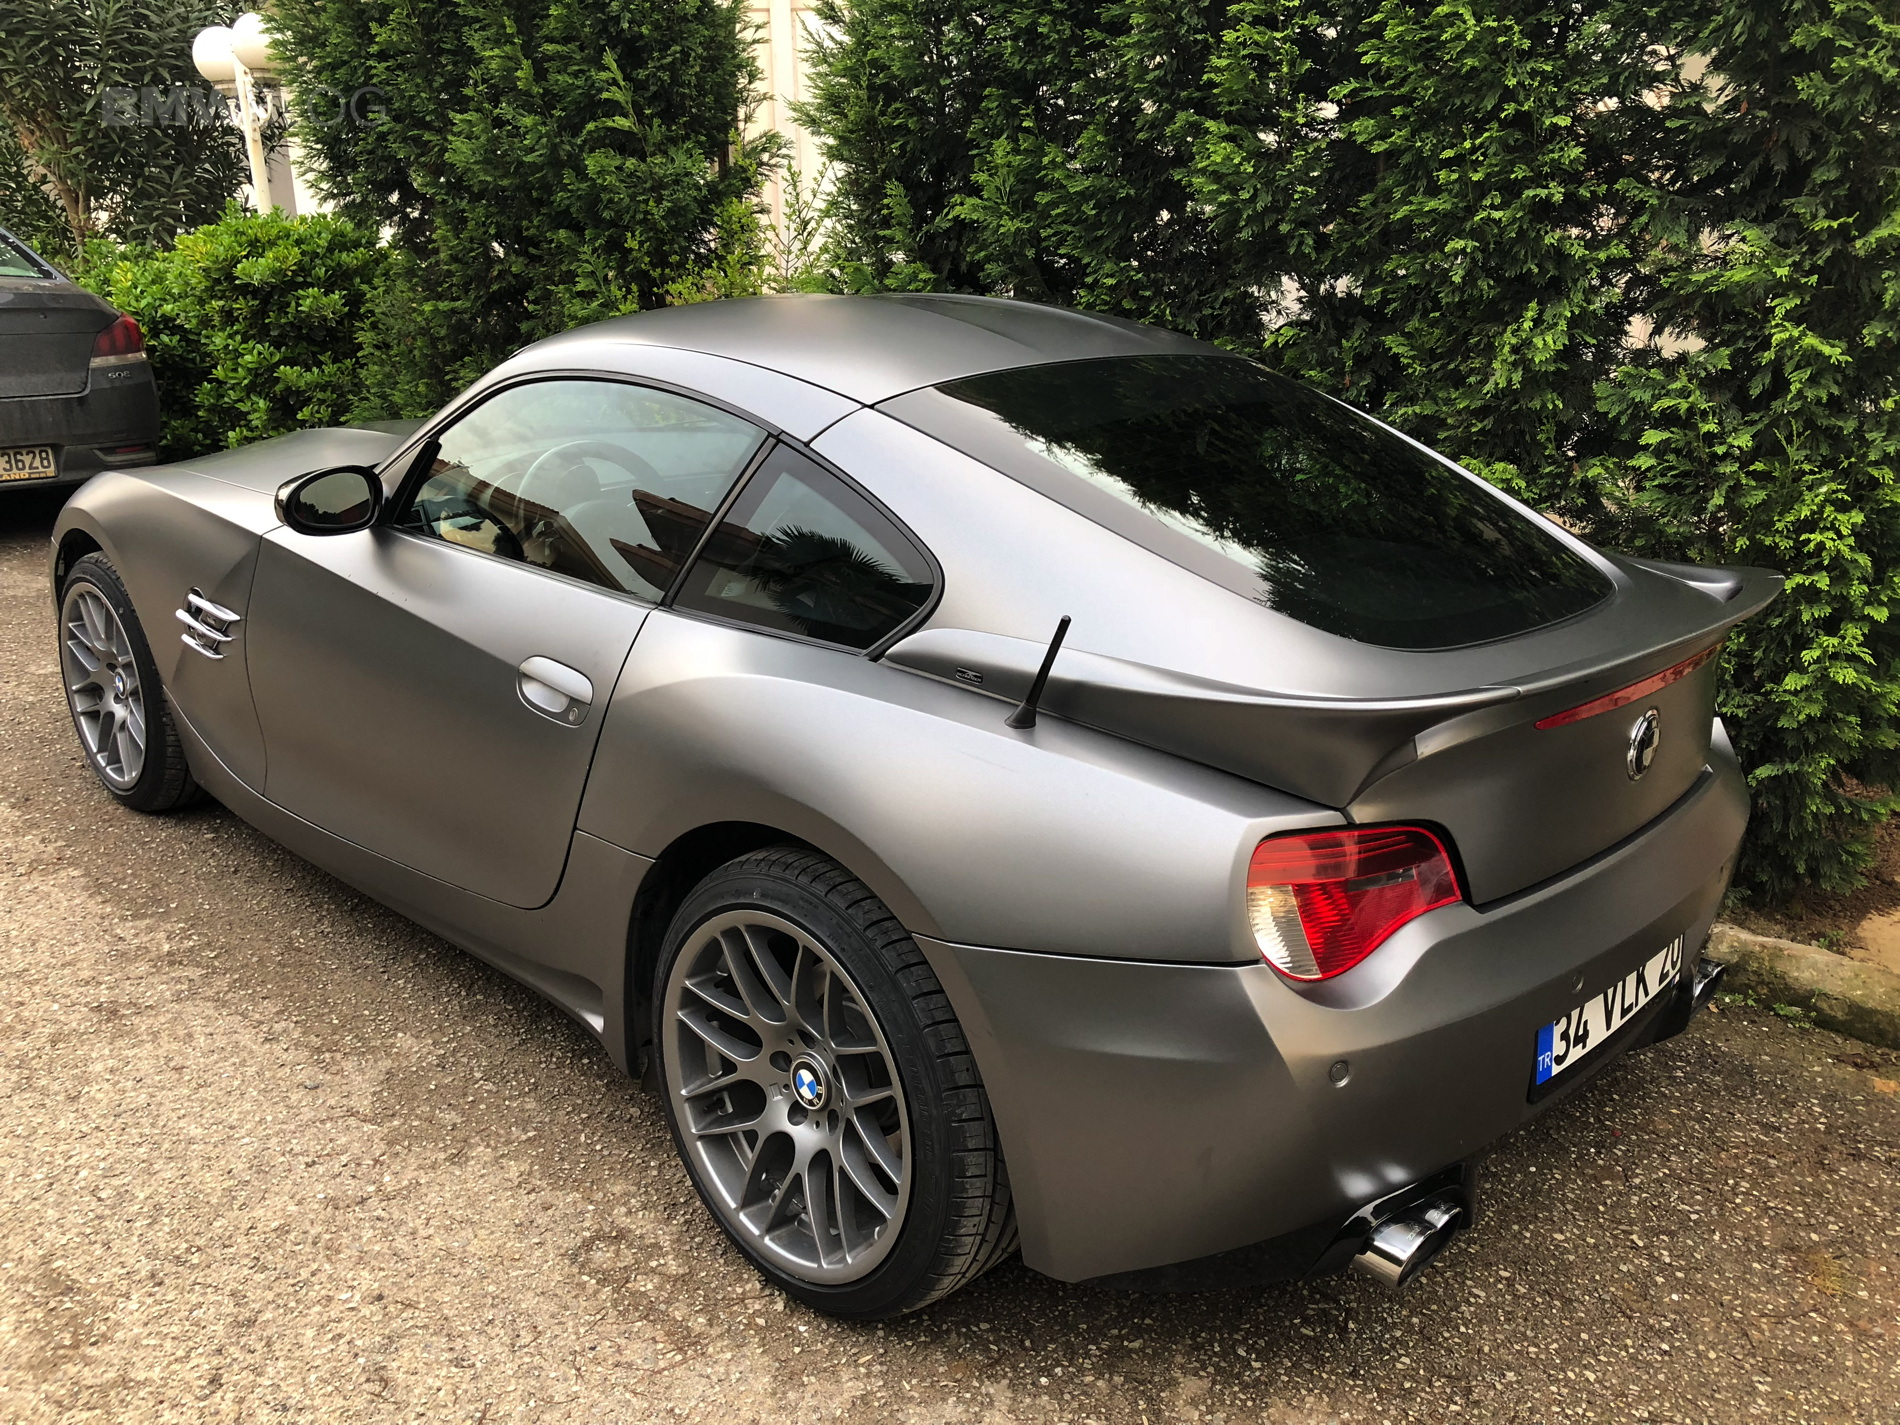 This Bmw Acs4 Z4 Coupe By Ac Schnitzer Is A Beauty